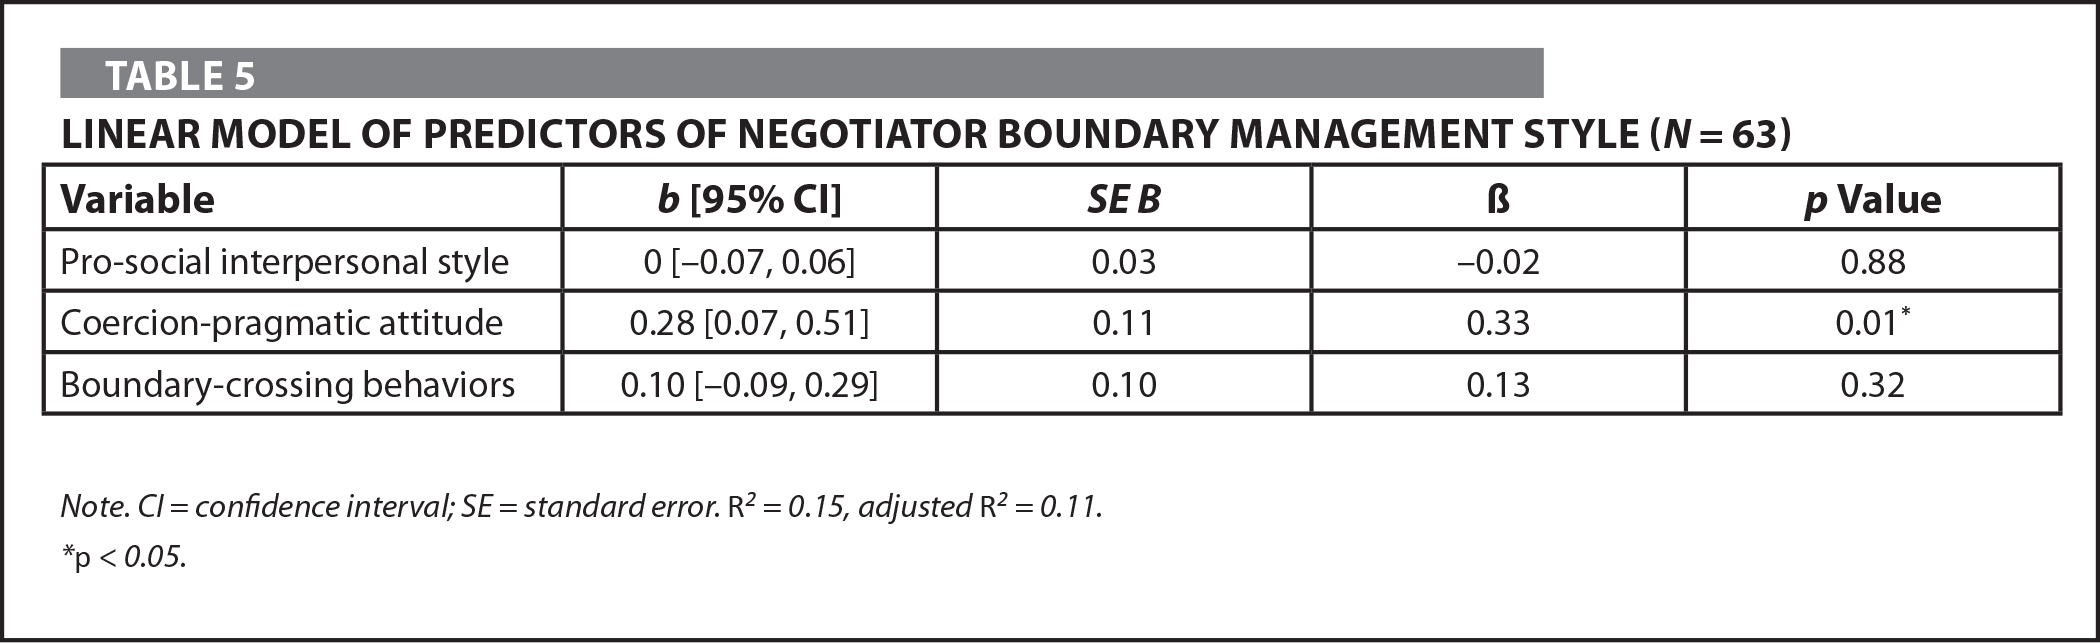 Linear Model of Predictors of Negotiator Boundary Management Style (N = 63)